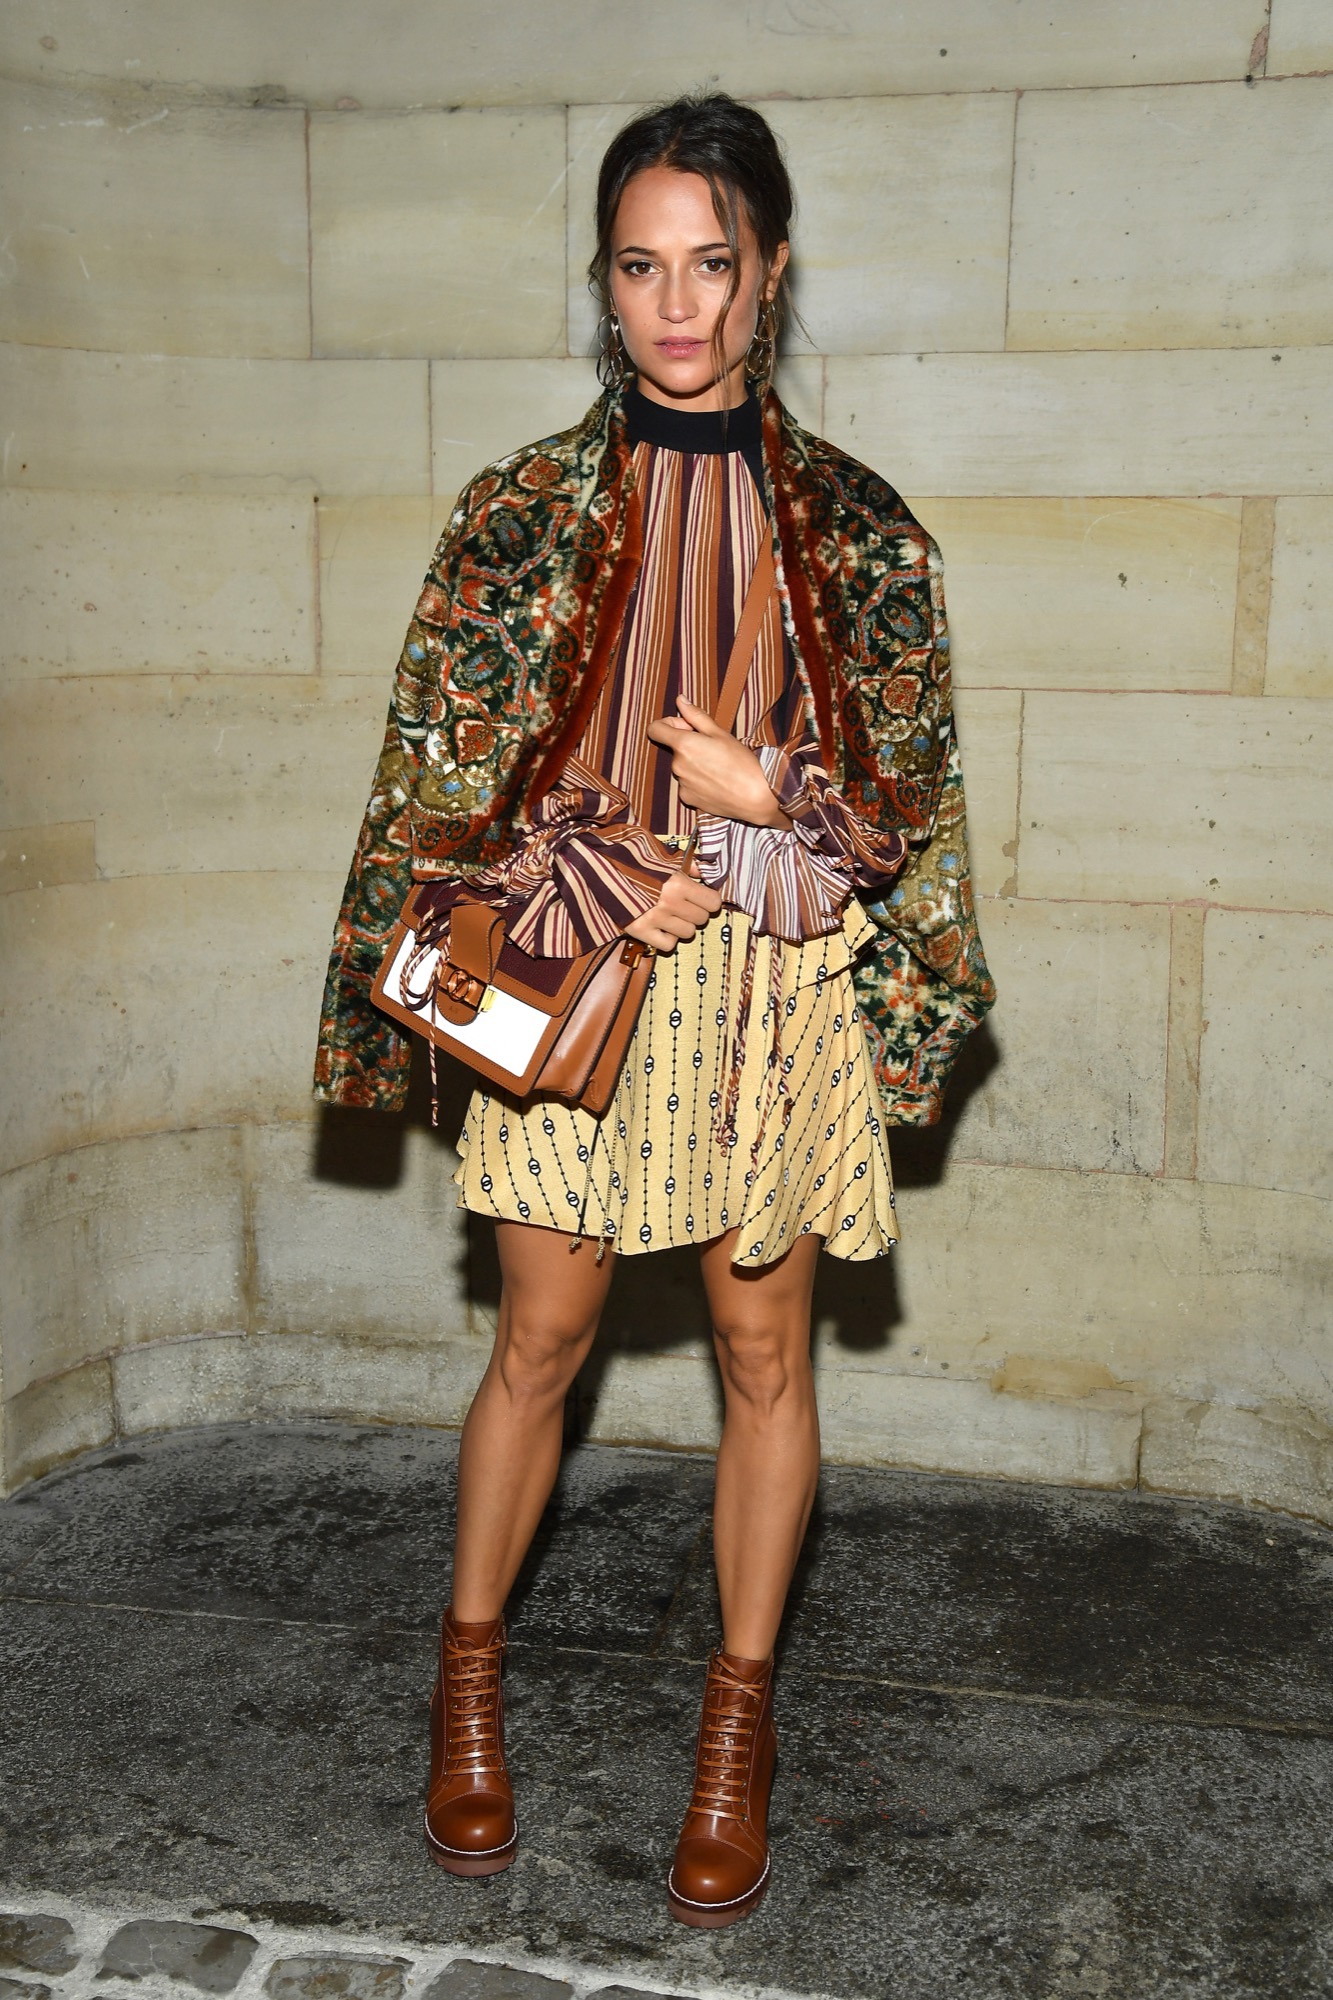 Alicia Vikander attends the Louis Vuitton show as part of the Paris Fashion Week Womenswear Spring/Summer 2019 on October 2, 2018 in Paris, France.